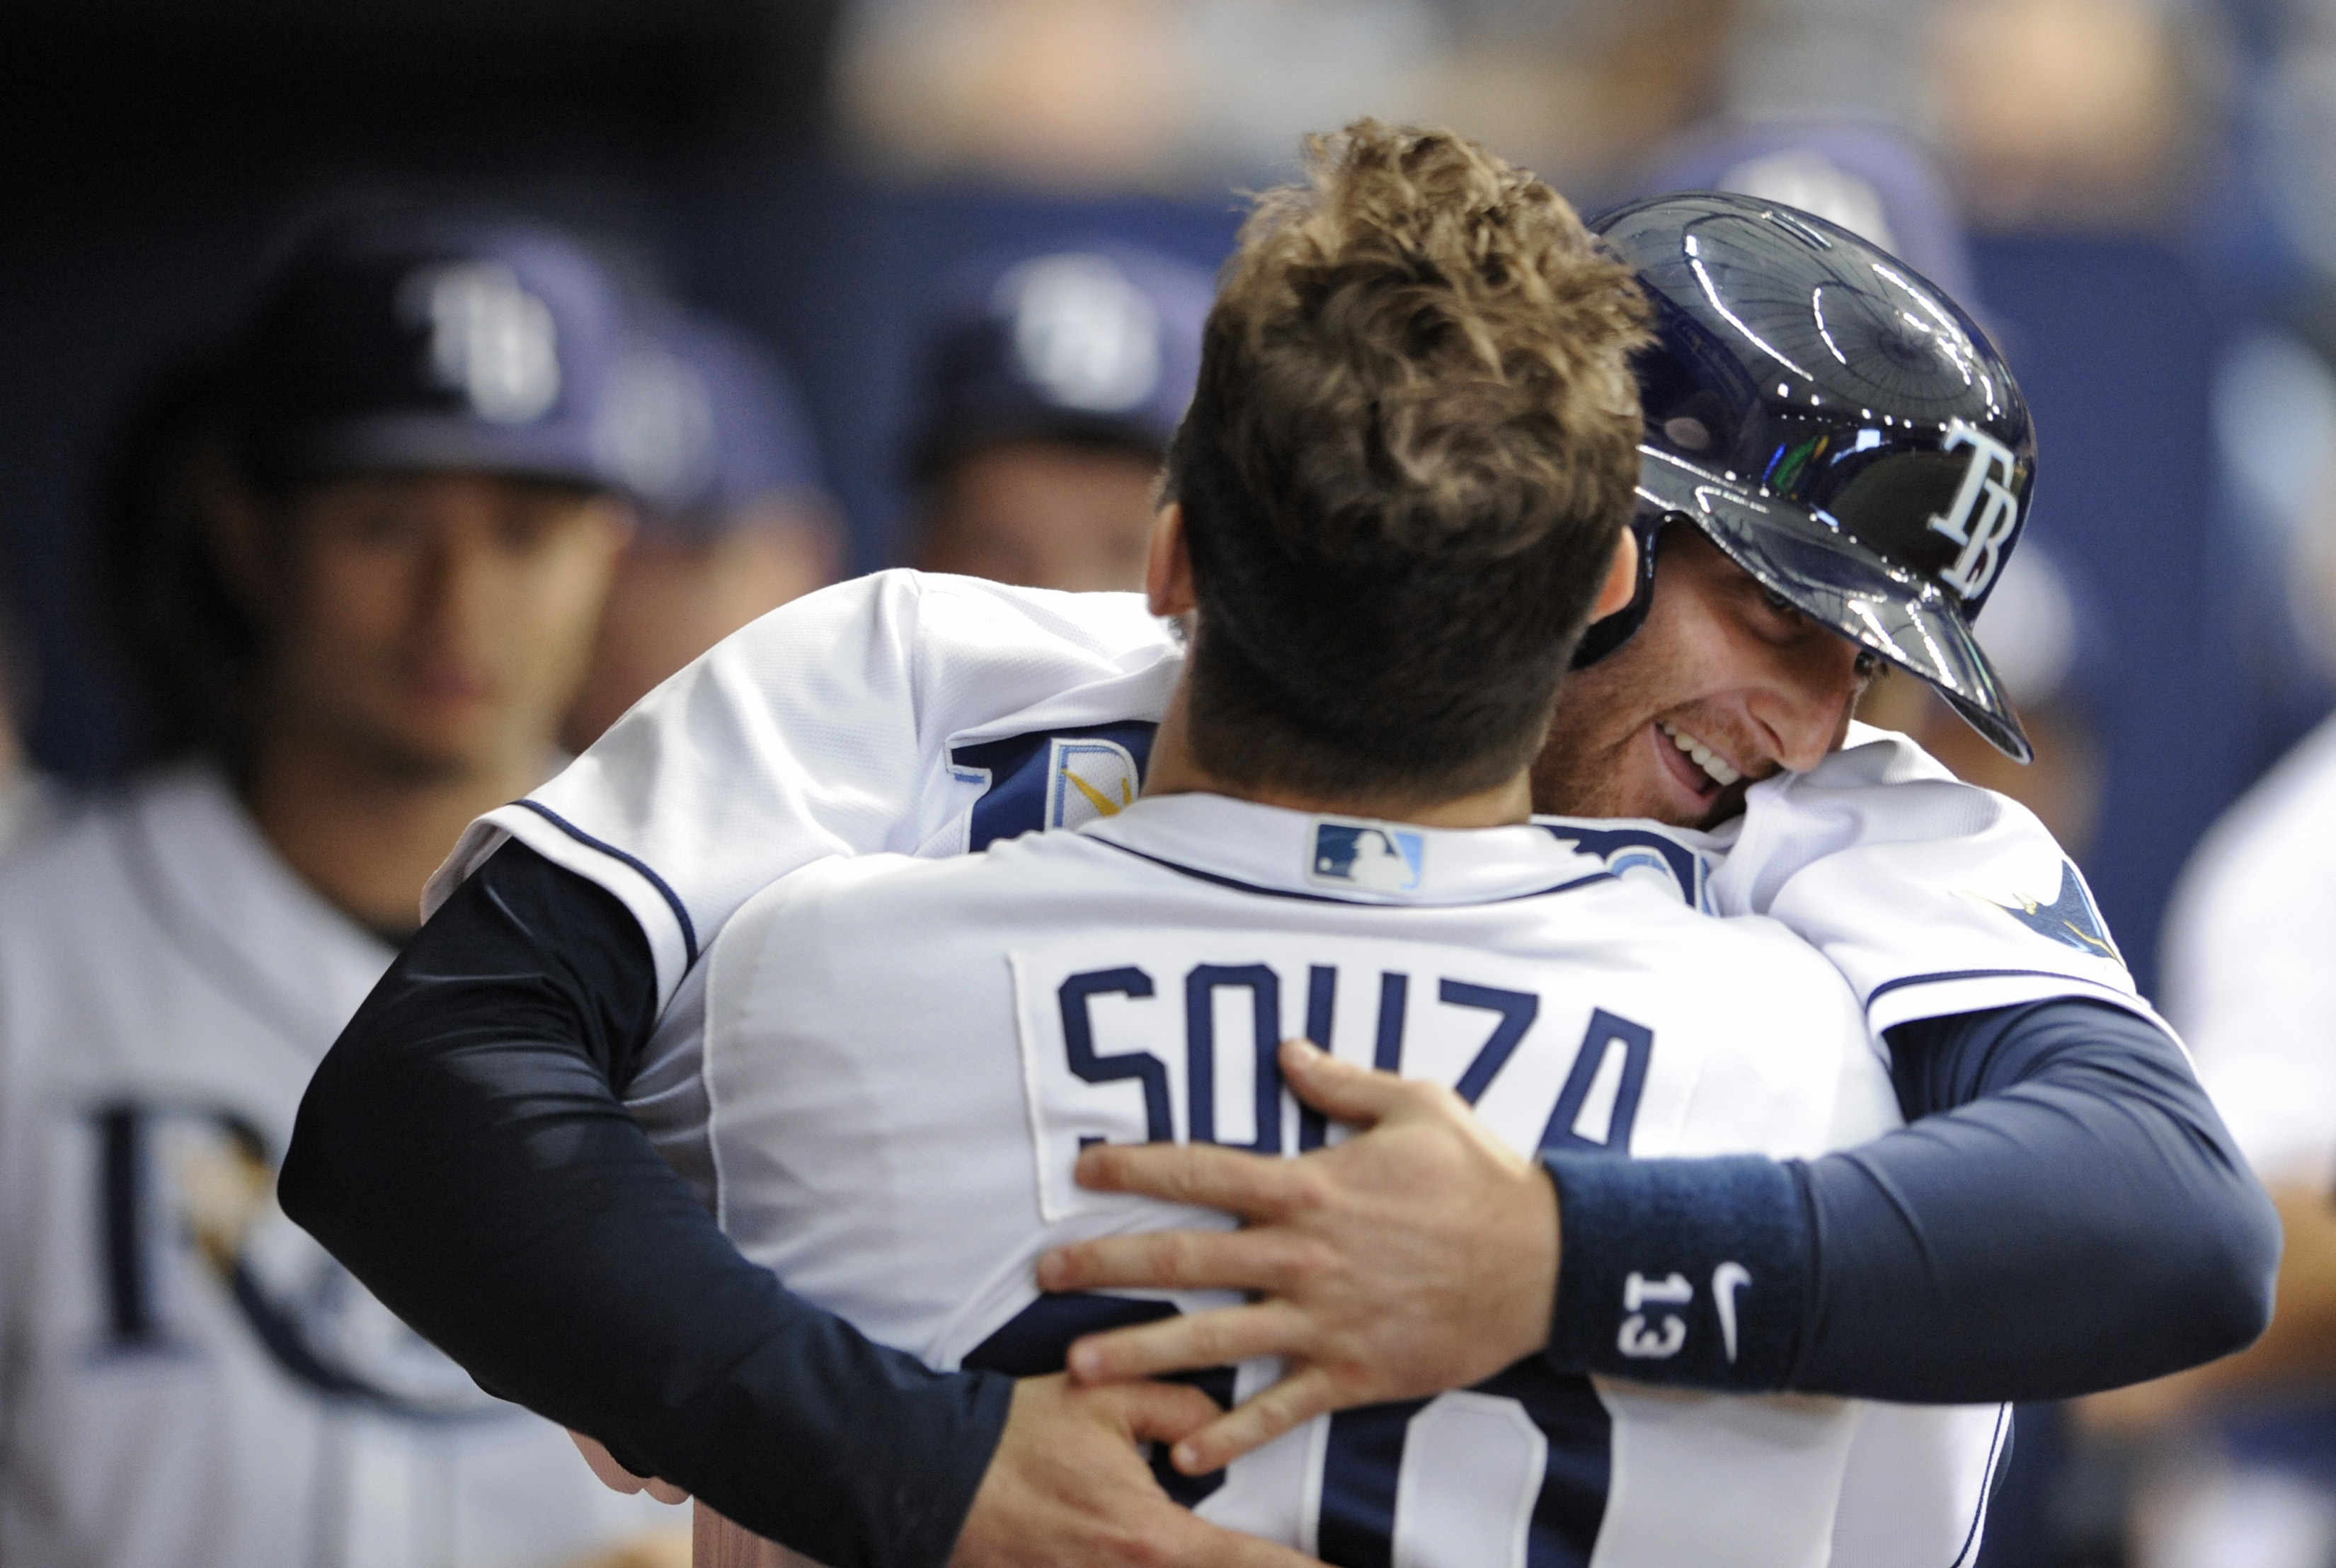 Tampa Bay Rays' Steven Souza Jr., center, congratulates Brad Miller, right, in the dugout after his solo home run off Houston Astros starter Mike Fiers during the third inning of a baseball game, Saturday, June 11, 2016, in St. Petersburg, Fla. (AP Photo/